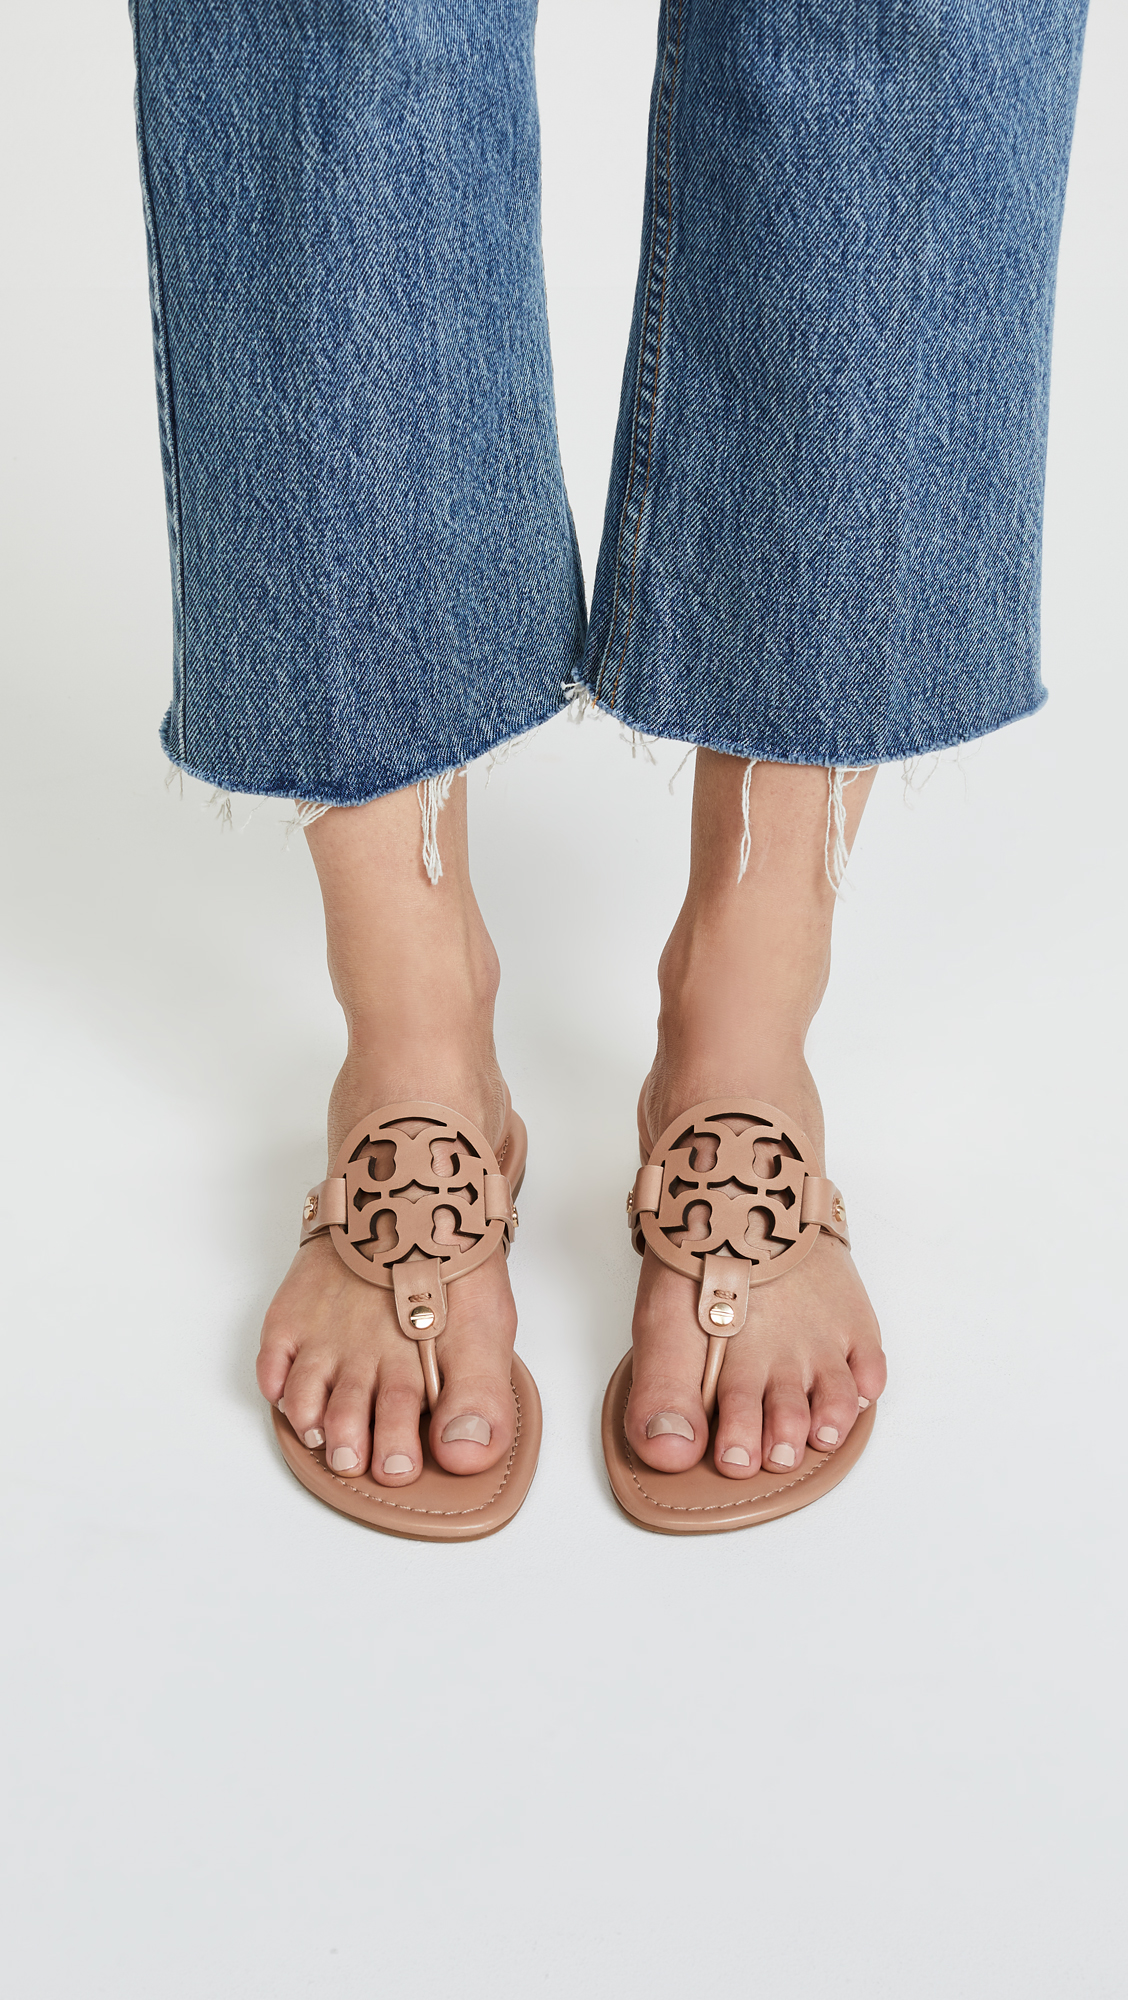 da20e667b7e6 Tory Burch Miller Thong Sandals